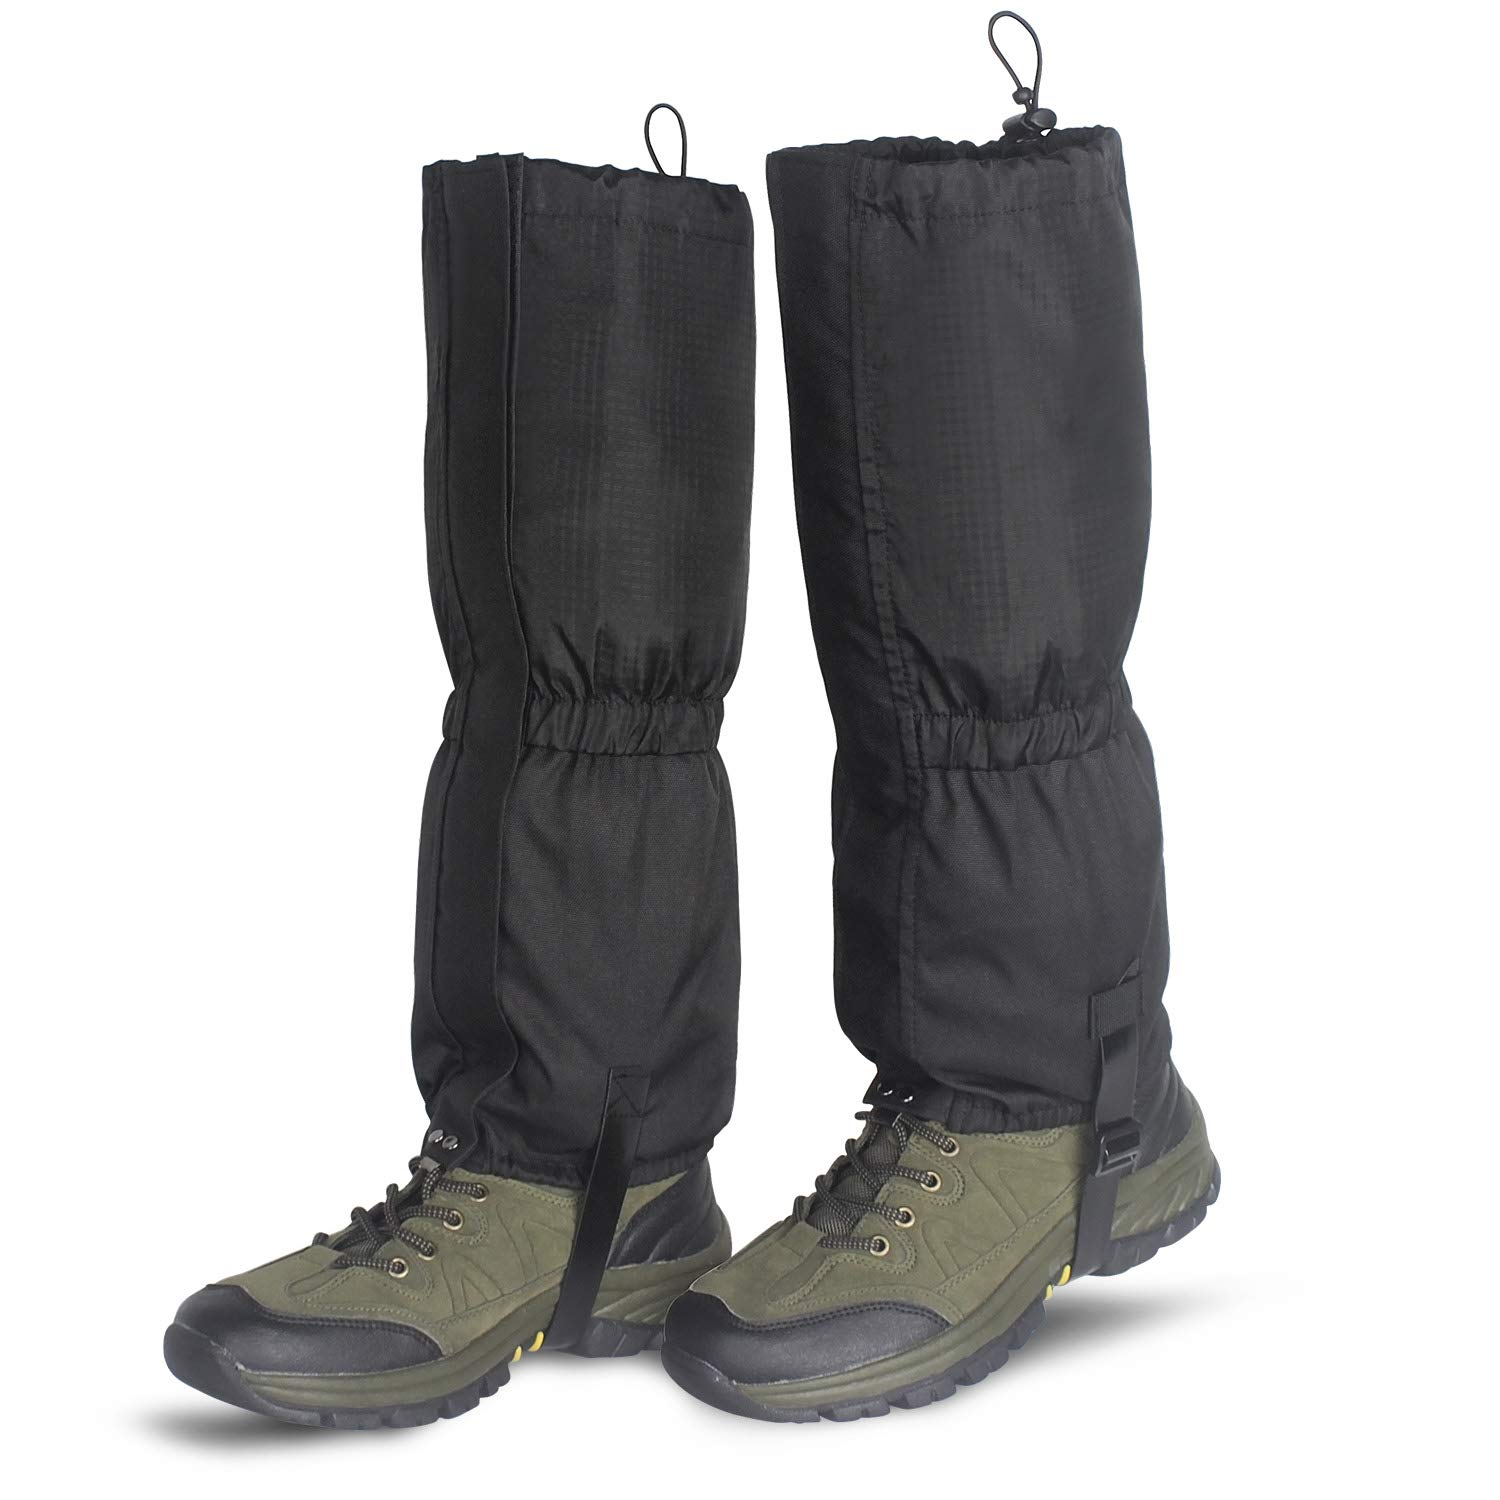 Unigear Leg Gaiters Waterproof Boot Gaiters with Zipper for Hiking Hunting Climbing Snowing for Men and Women (Black, S) by Unigear